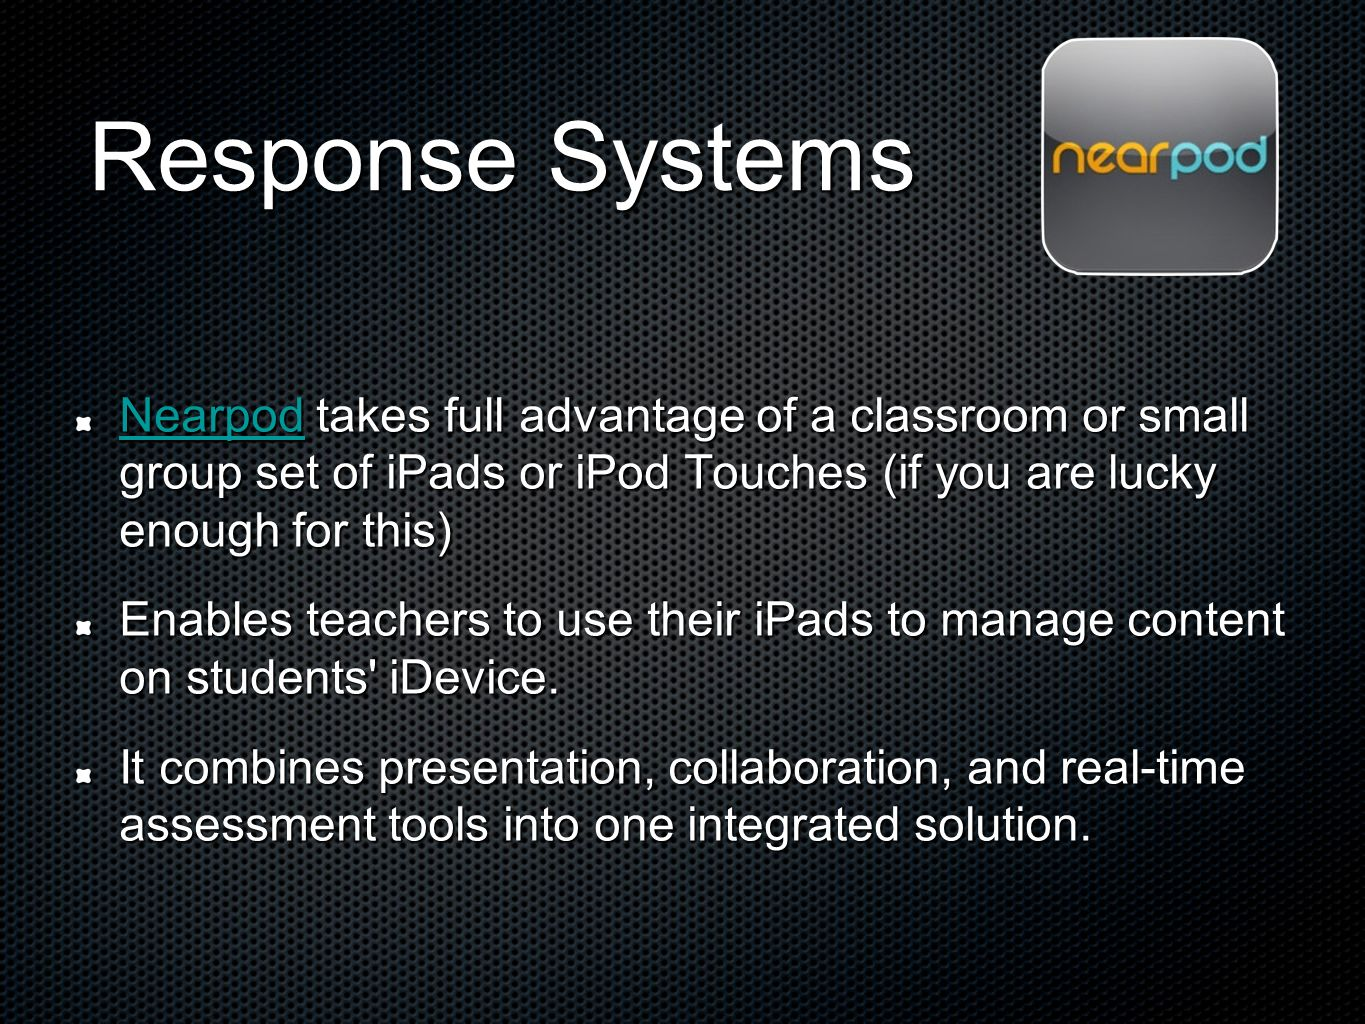 Response Systems Nearpod takes full advantage of a classroom or small group set of iPads or iPod Touches (if you are lucky enough for this)